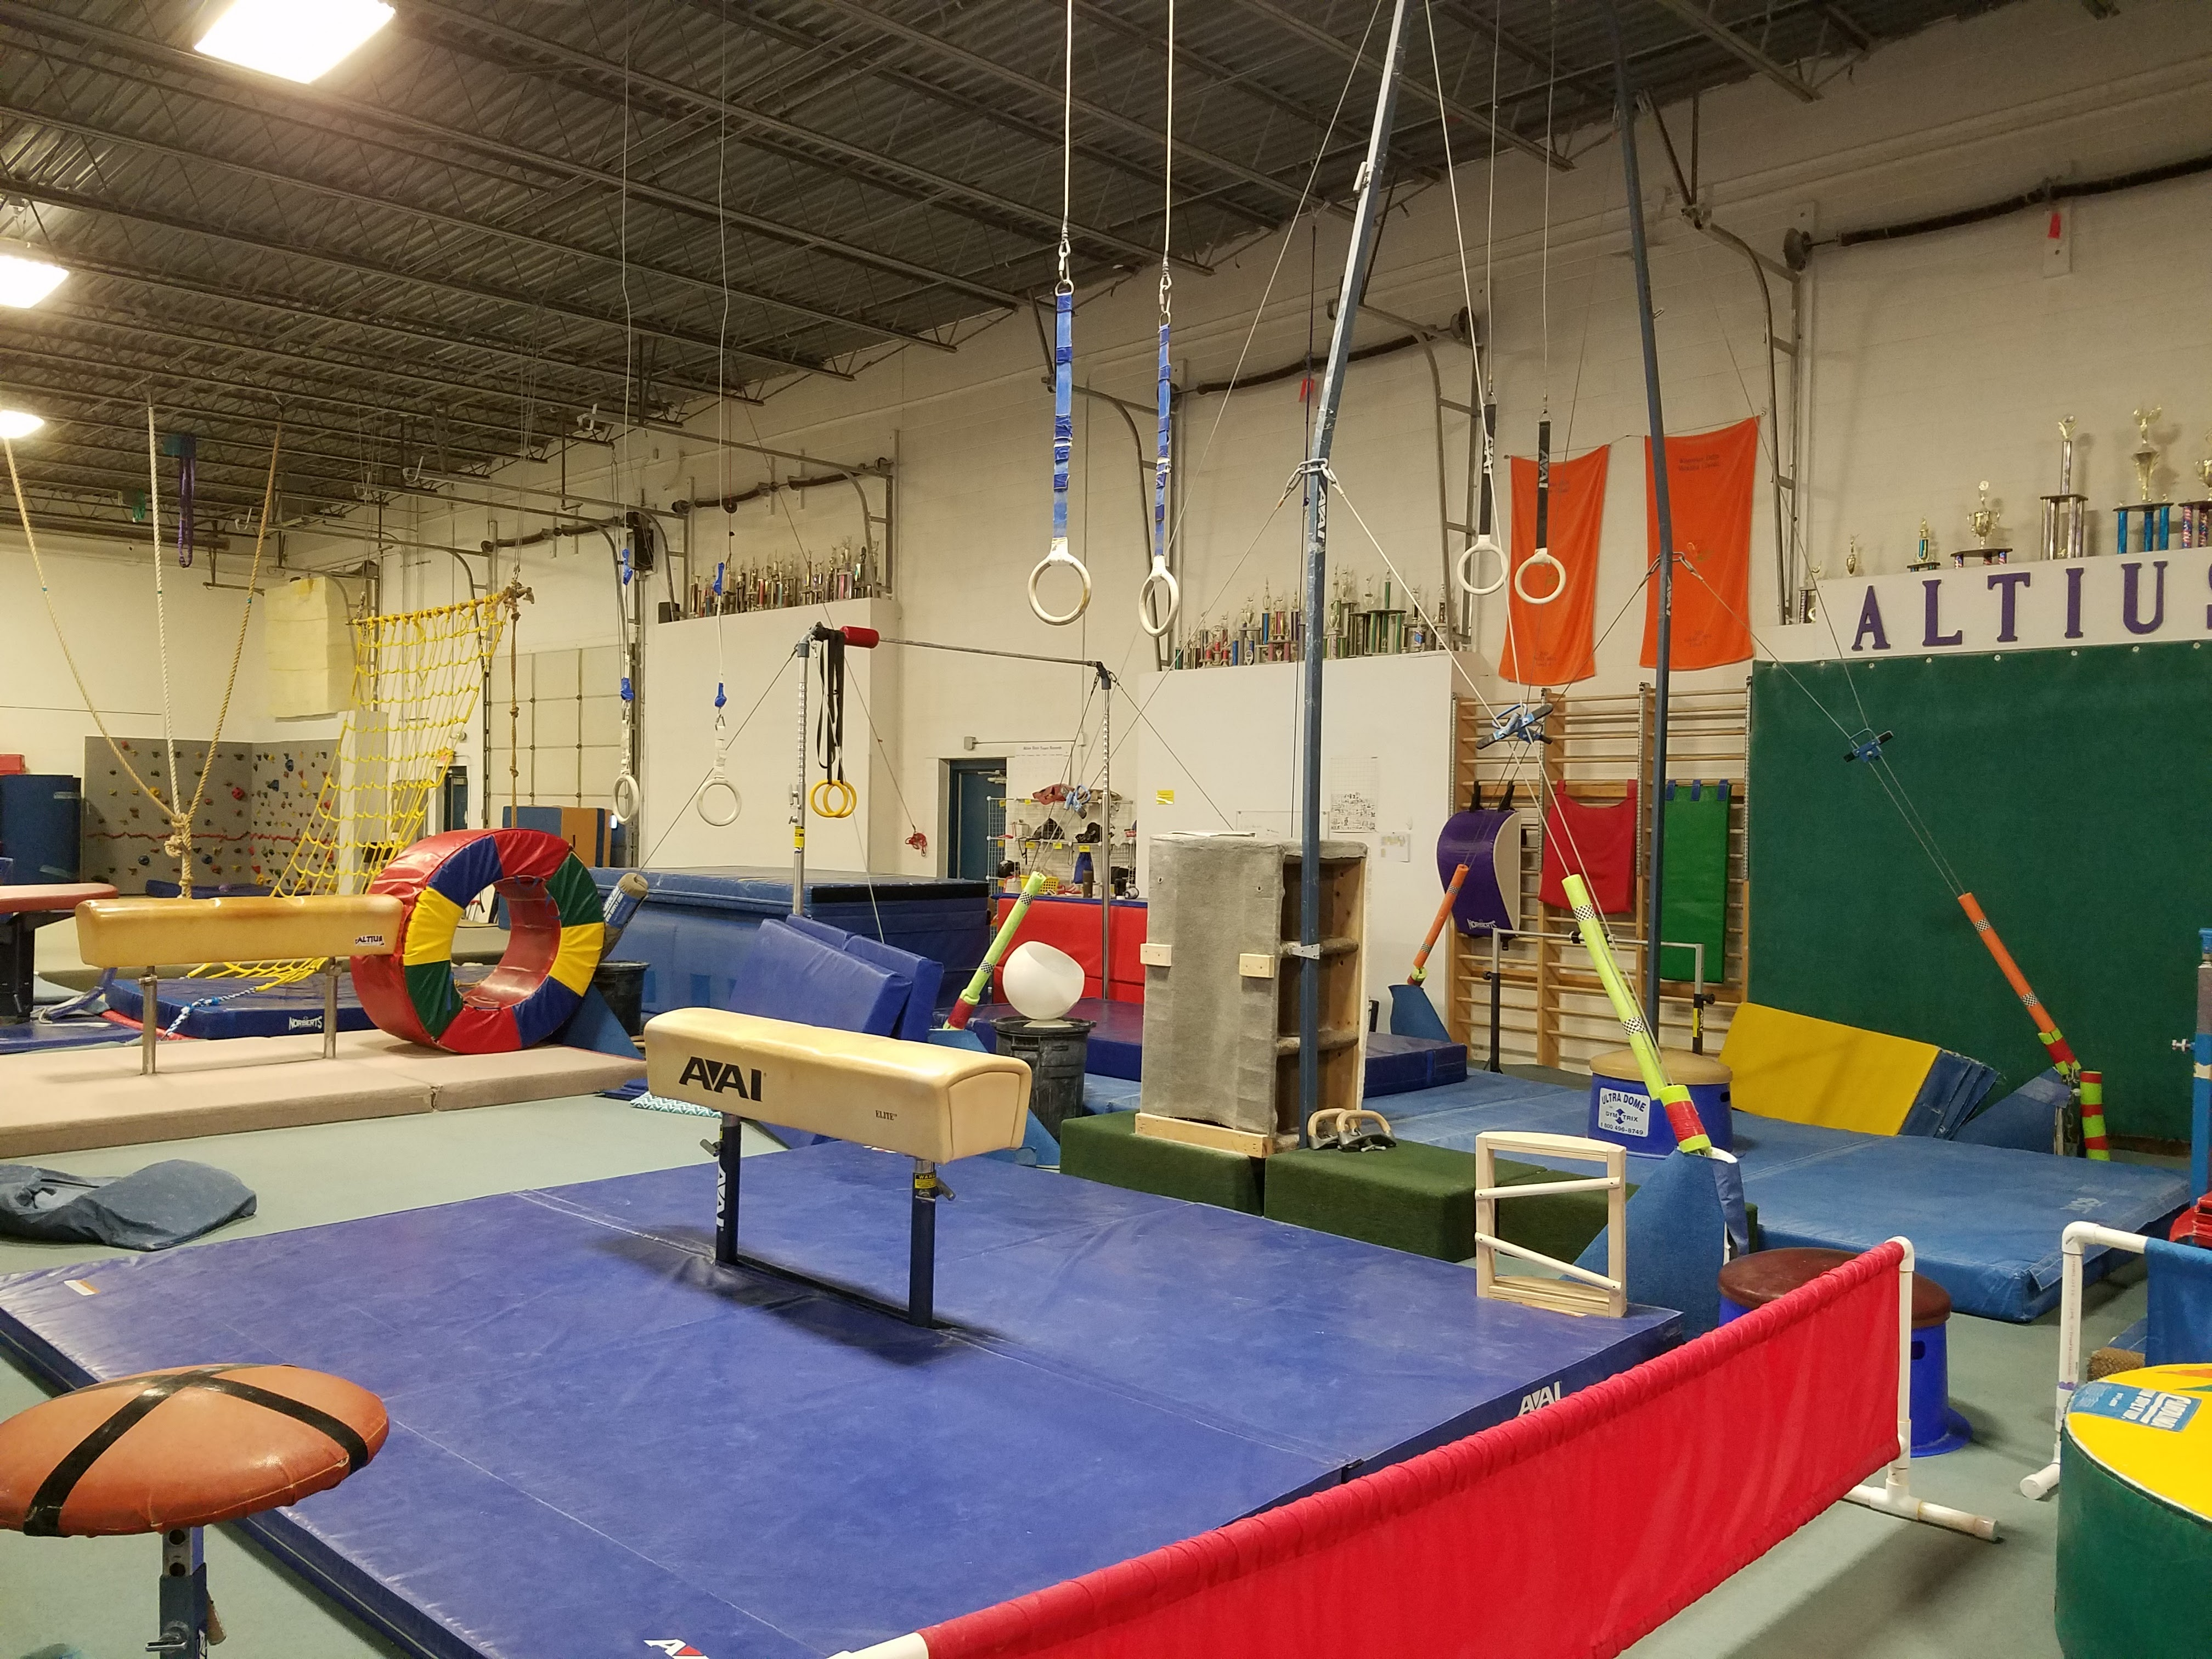 Altius is one of Wisconsin's largest gymnastics facilities, with 20,000 square feet of space and dedicated boys, Kindergym, and recreational areas.